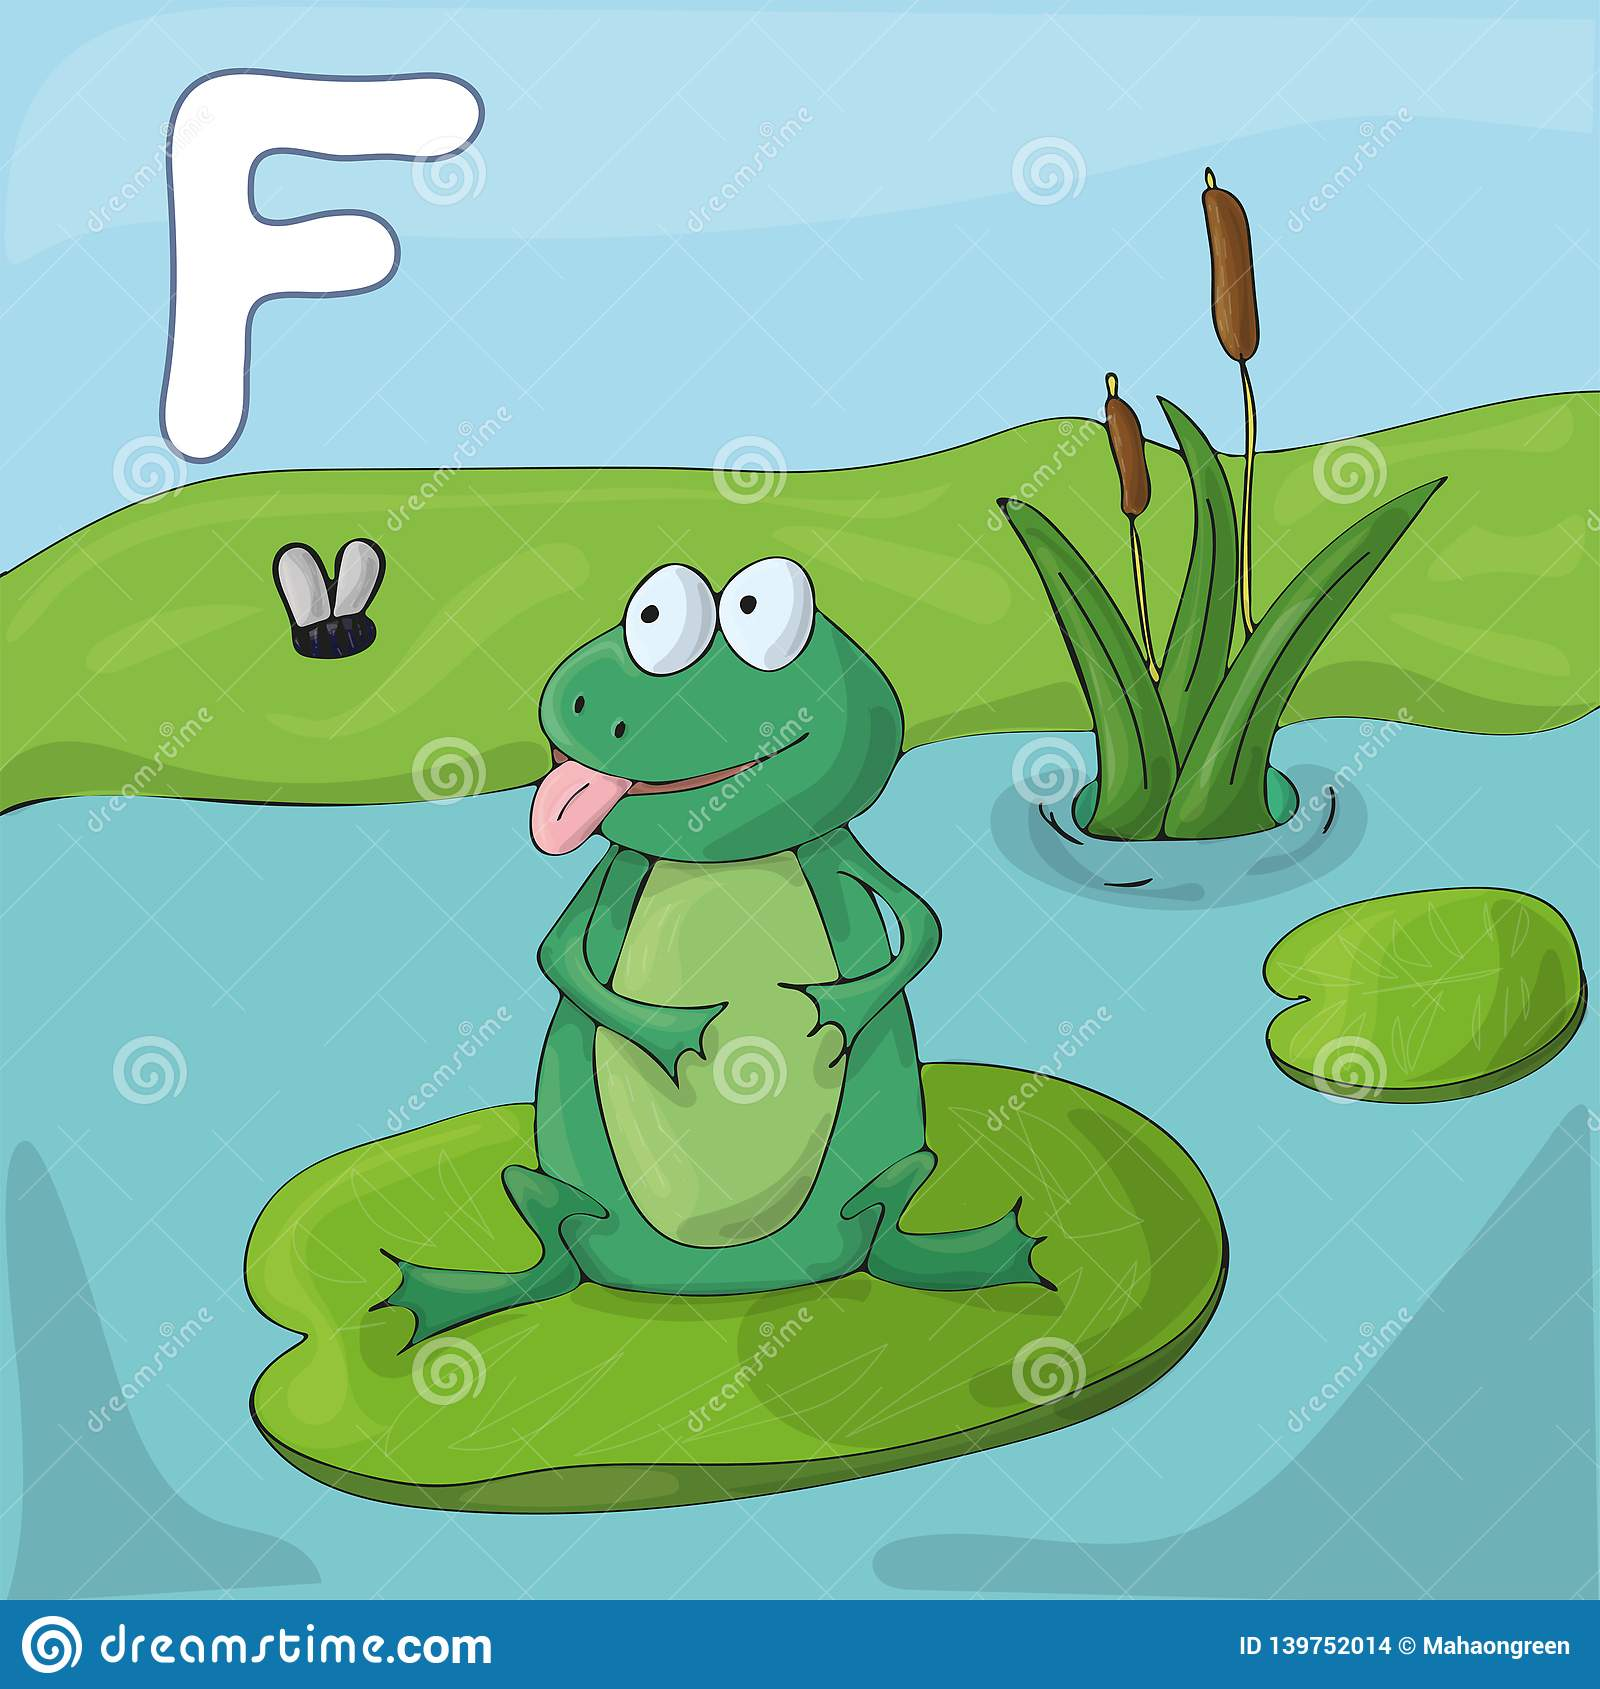 Green frog on a lake. Childrens illustrated alphabet. Letter F .